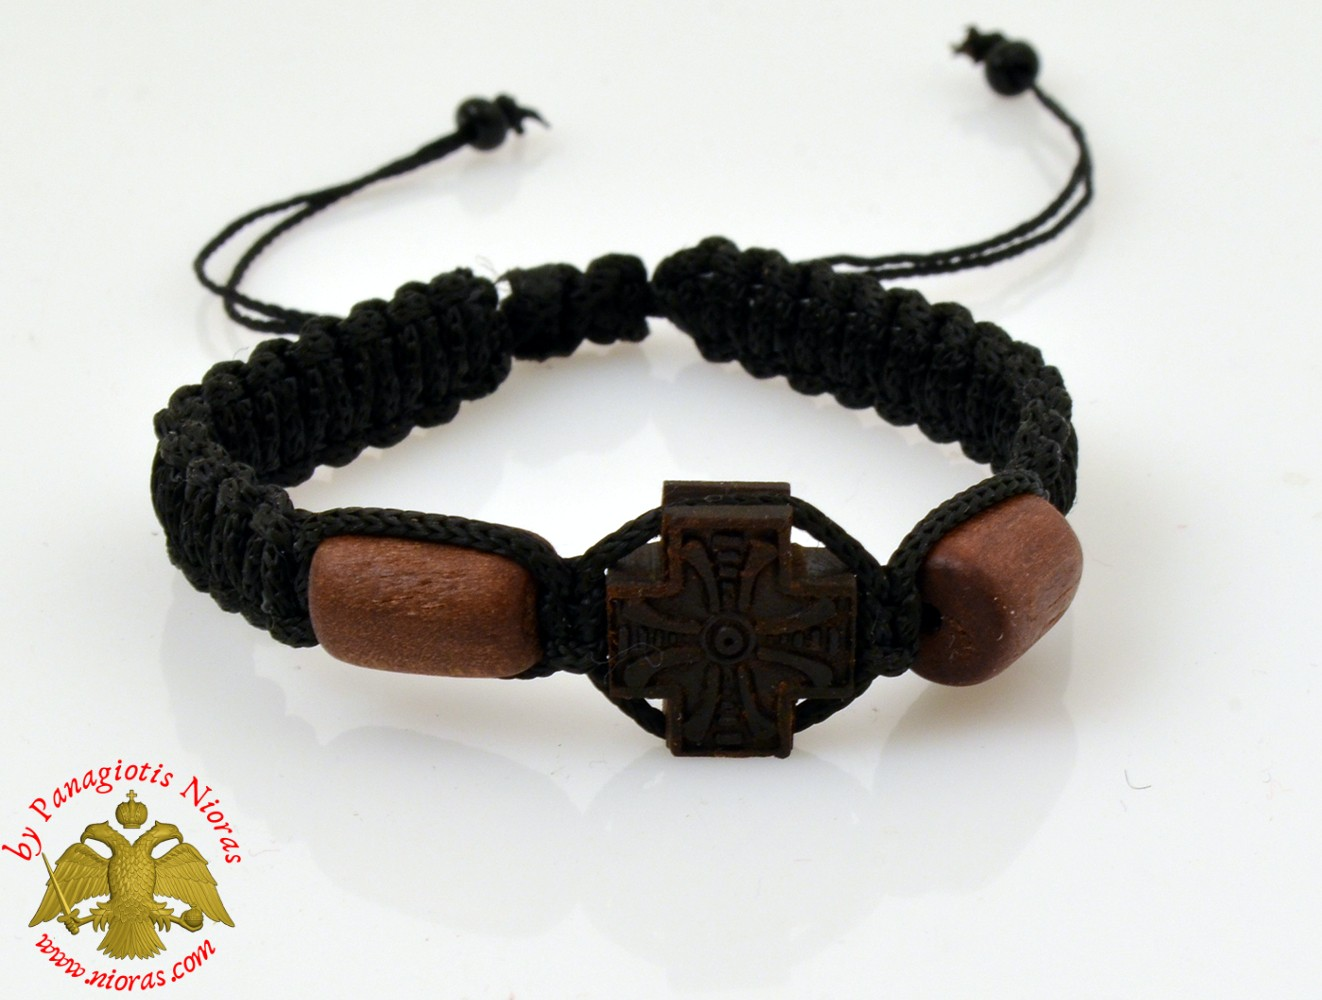 Hand Wrist Praying Rope with Wooden Carved Cross